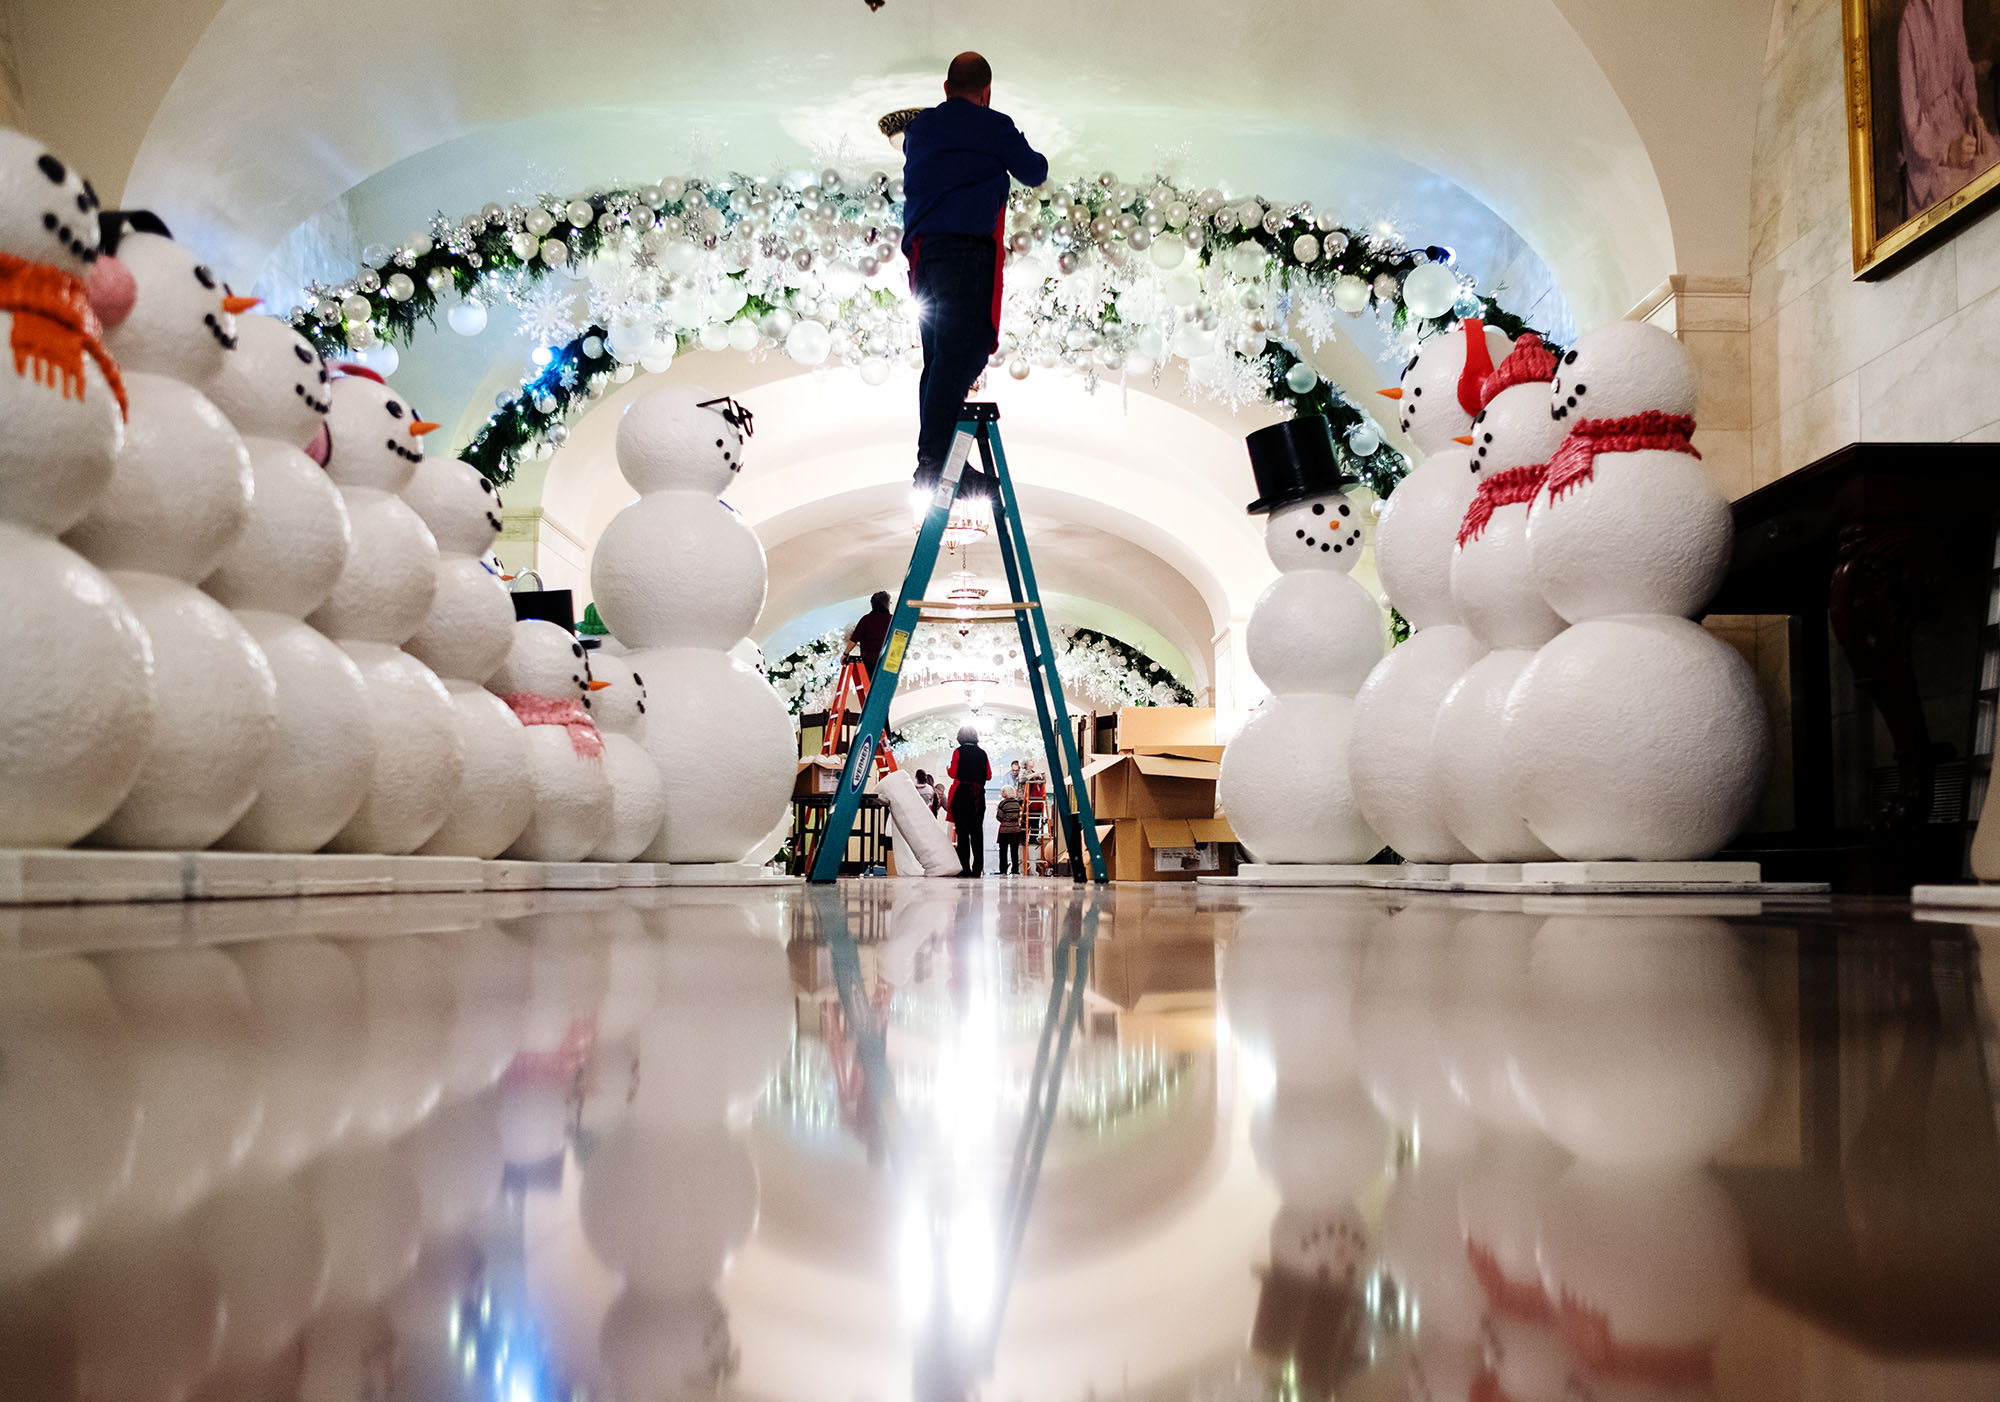 volunteers and staff work on holiday decorations in the lower cross hall of the white house - White House Christmas Decorations 2016